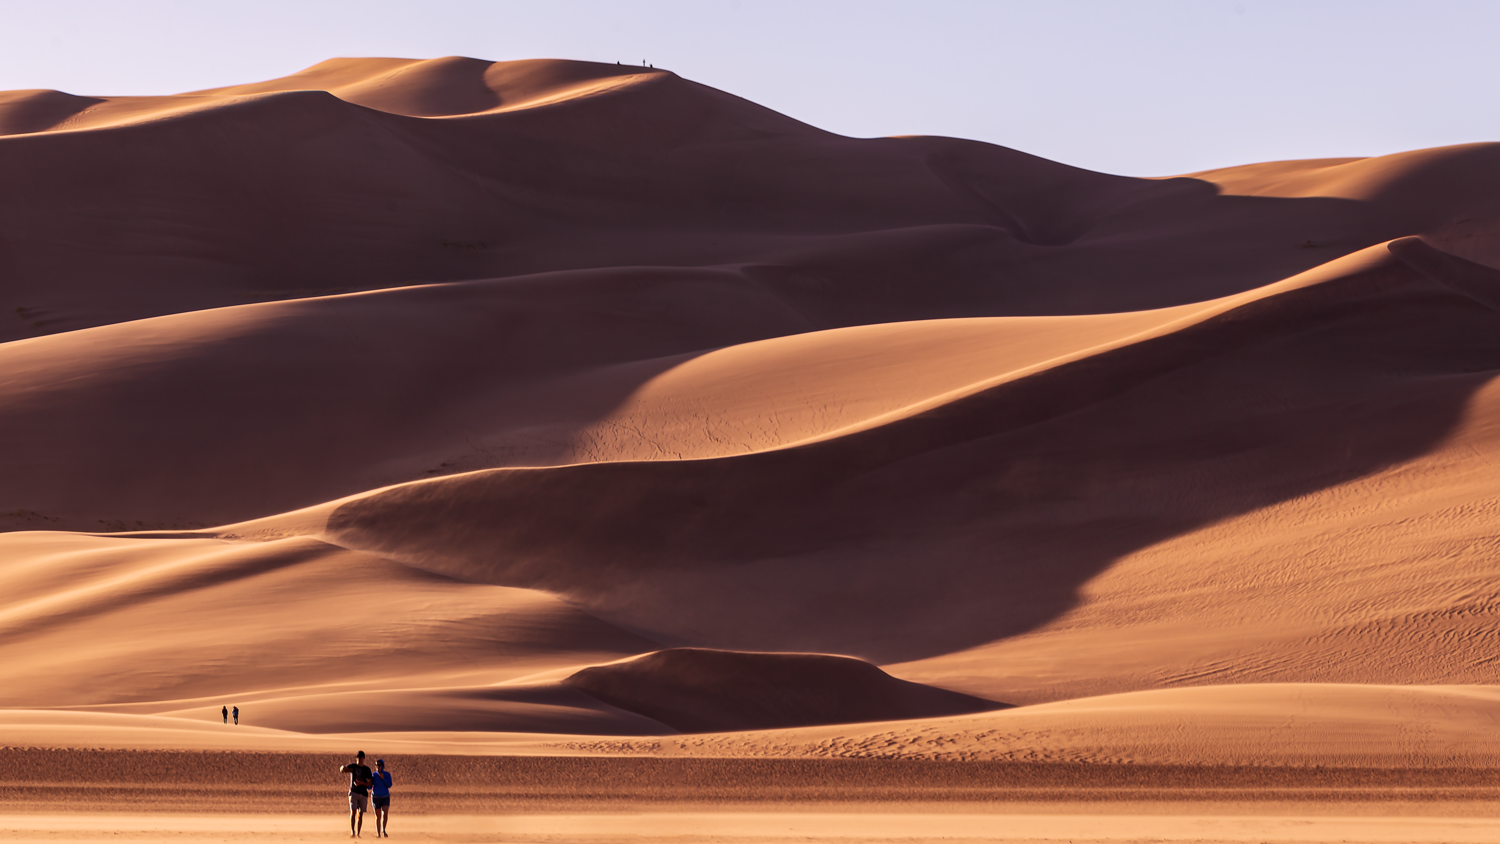 Hiking the Great Dunes by Cliff Mueller